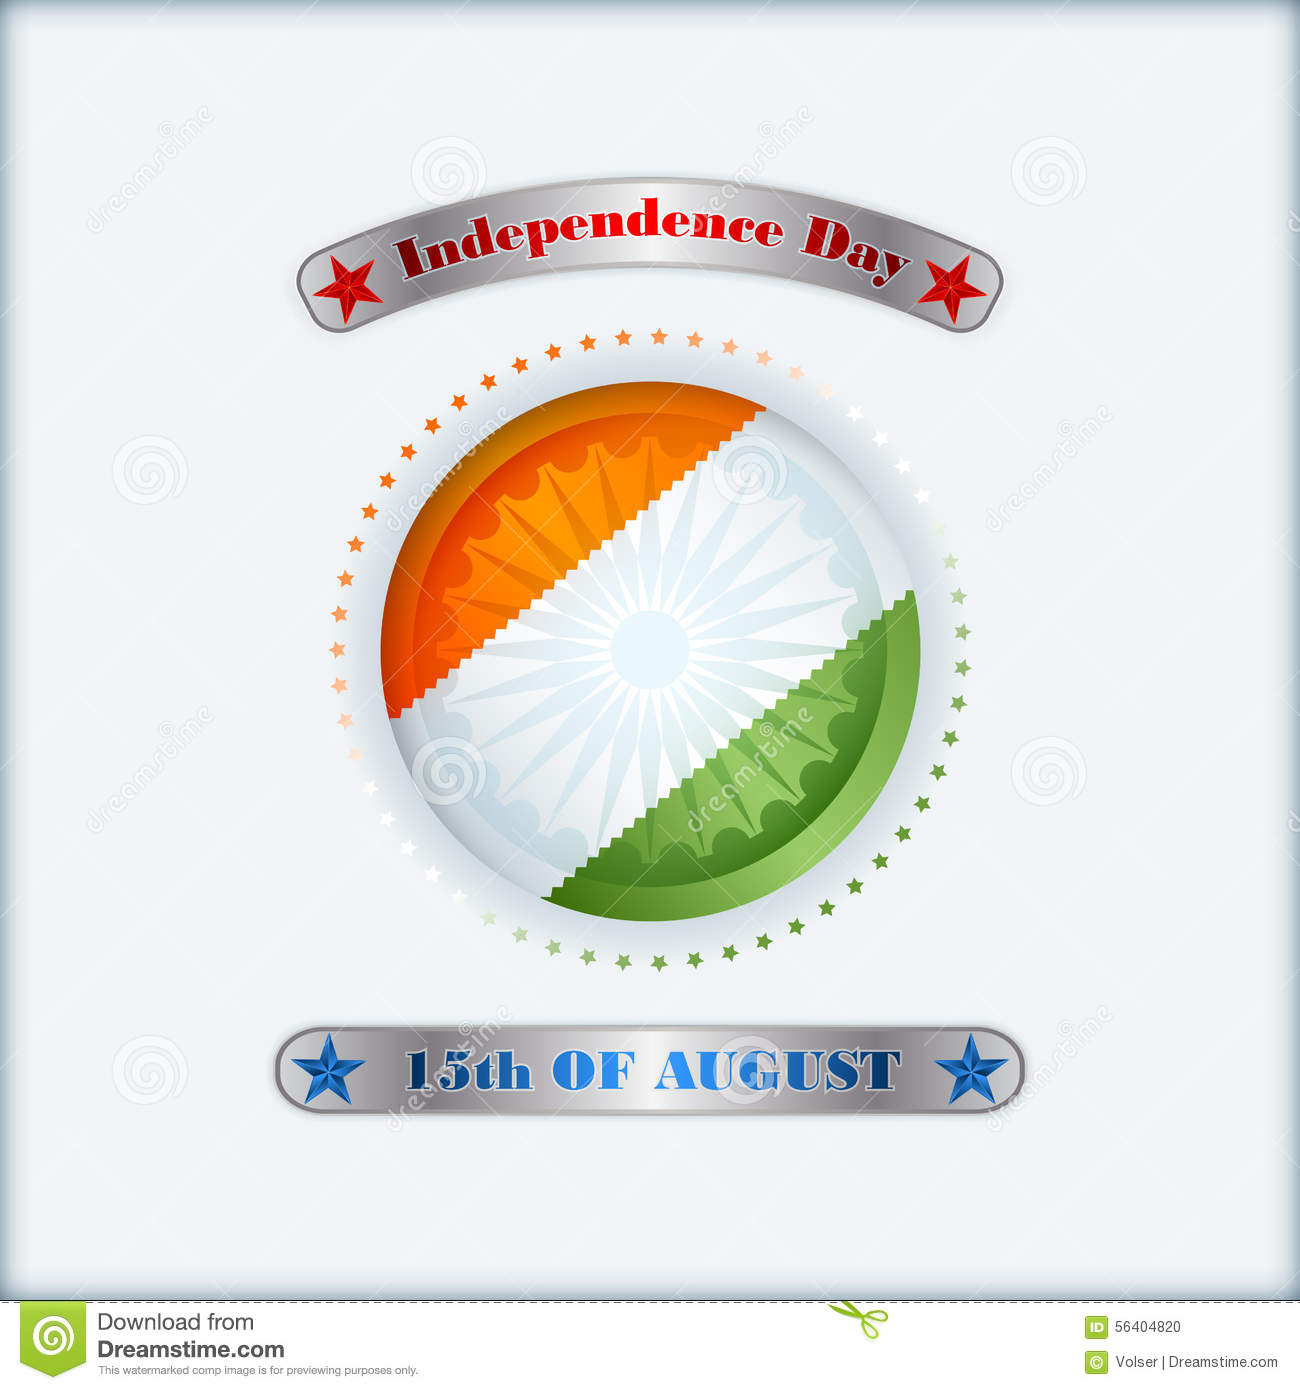 Indian Independence Day Vector Background Cartoon Vector